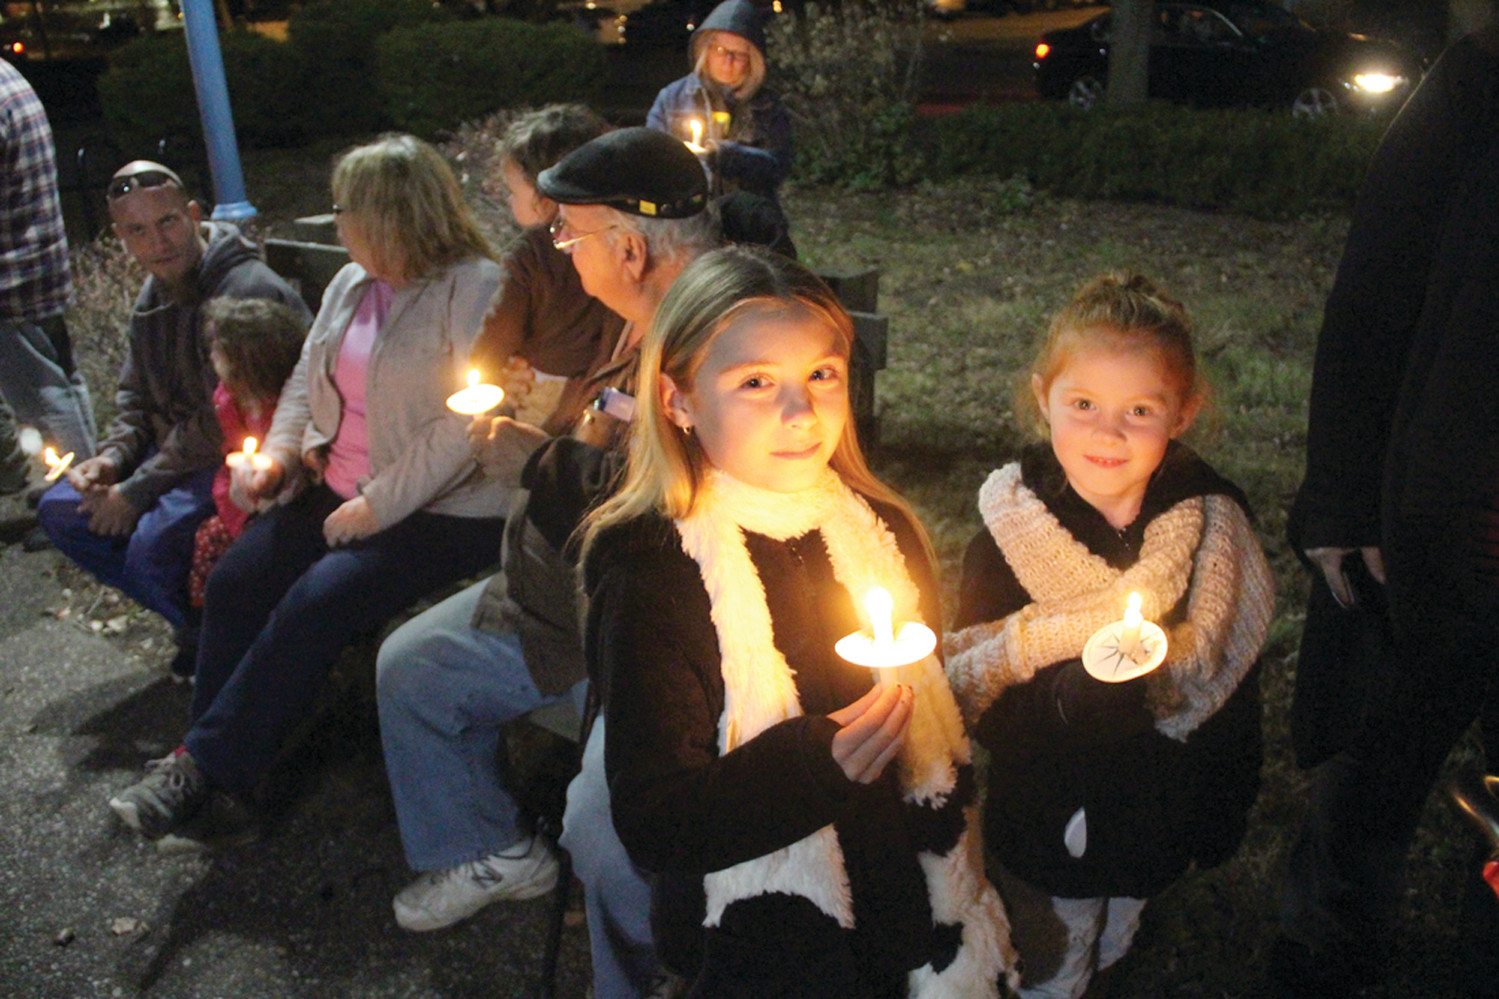 CANDLE GLOW: People joined in singing Christmas carols following the lighting of the Conimicut Village tree Friday evening.